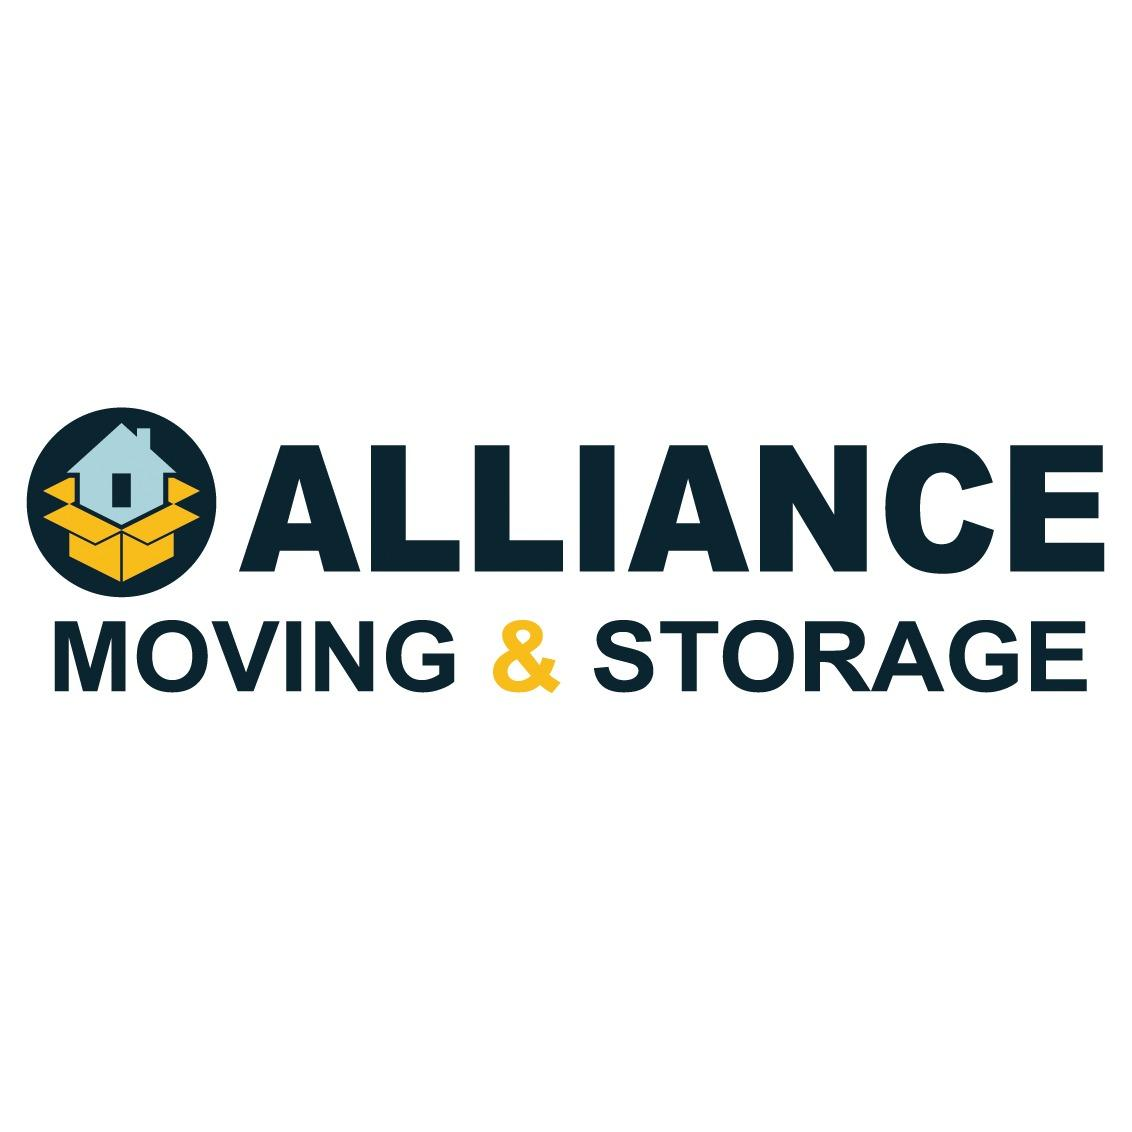 Alliance Moving and Storage